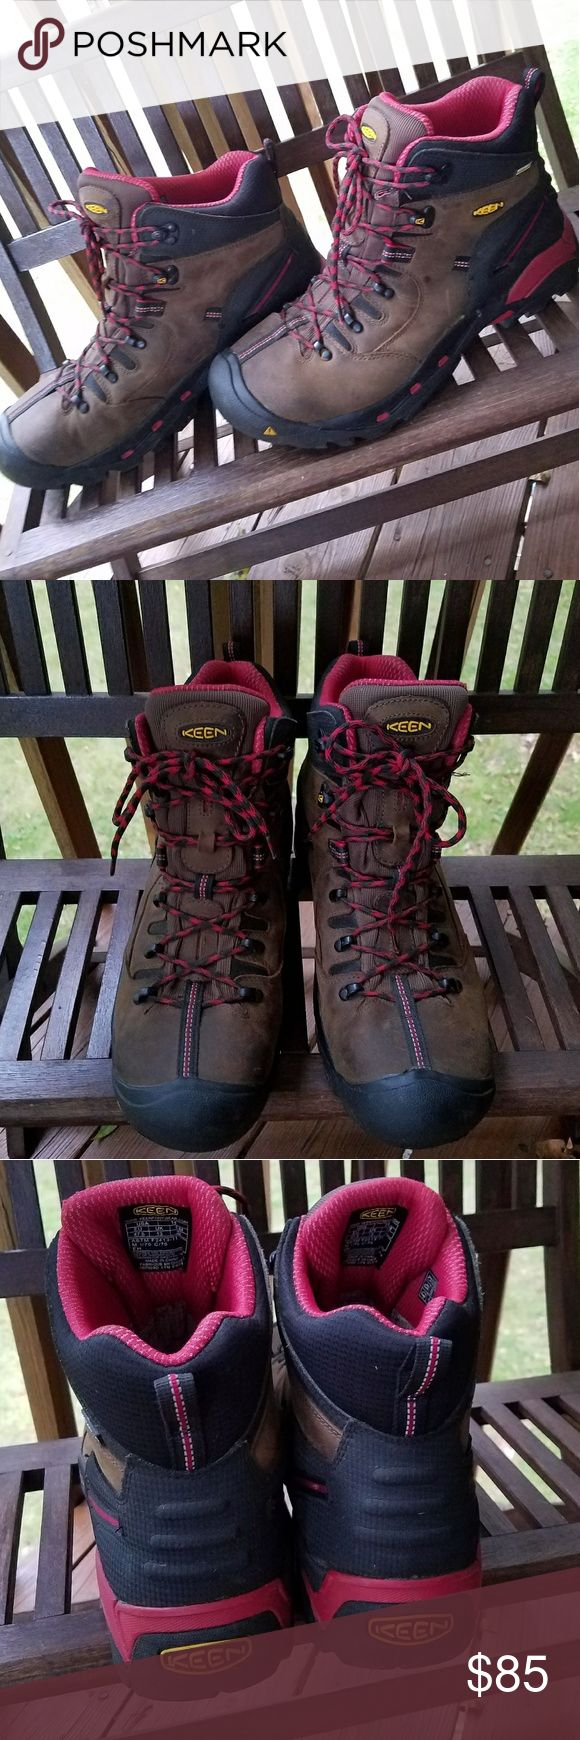 """Keen Steel Toe Hiking Boots Mens Keen """"Pittsburg """" steel toe hiking boots No box **Sz 14 but run small= fits sz13-13.5 EXCELLENT CONDITION  No damage.few marks only Worn for 2 days Not even any sock fuzzys inside! CLEAN & ready to use Meets all safety standards Top rated for waterproof,safety,comfort  Pd $160 @cabelas Trade val 100 BUNDLE TO SAVE$ Keen Shoes Boots"""